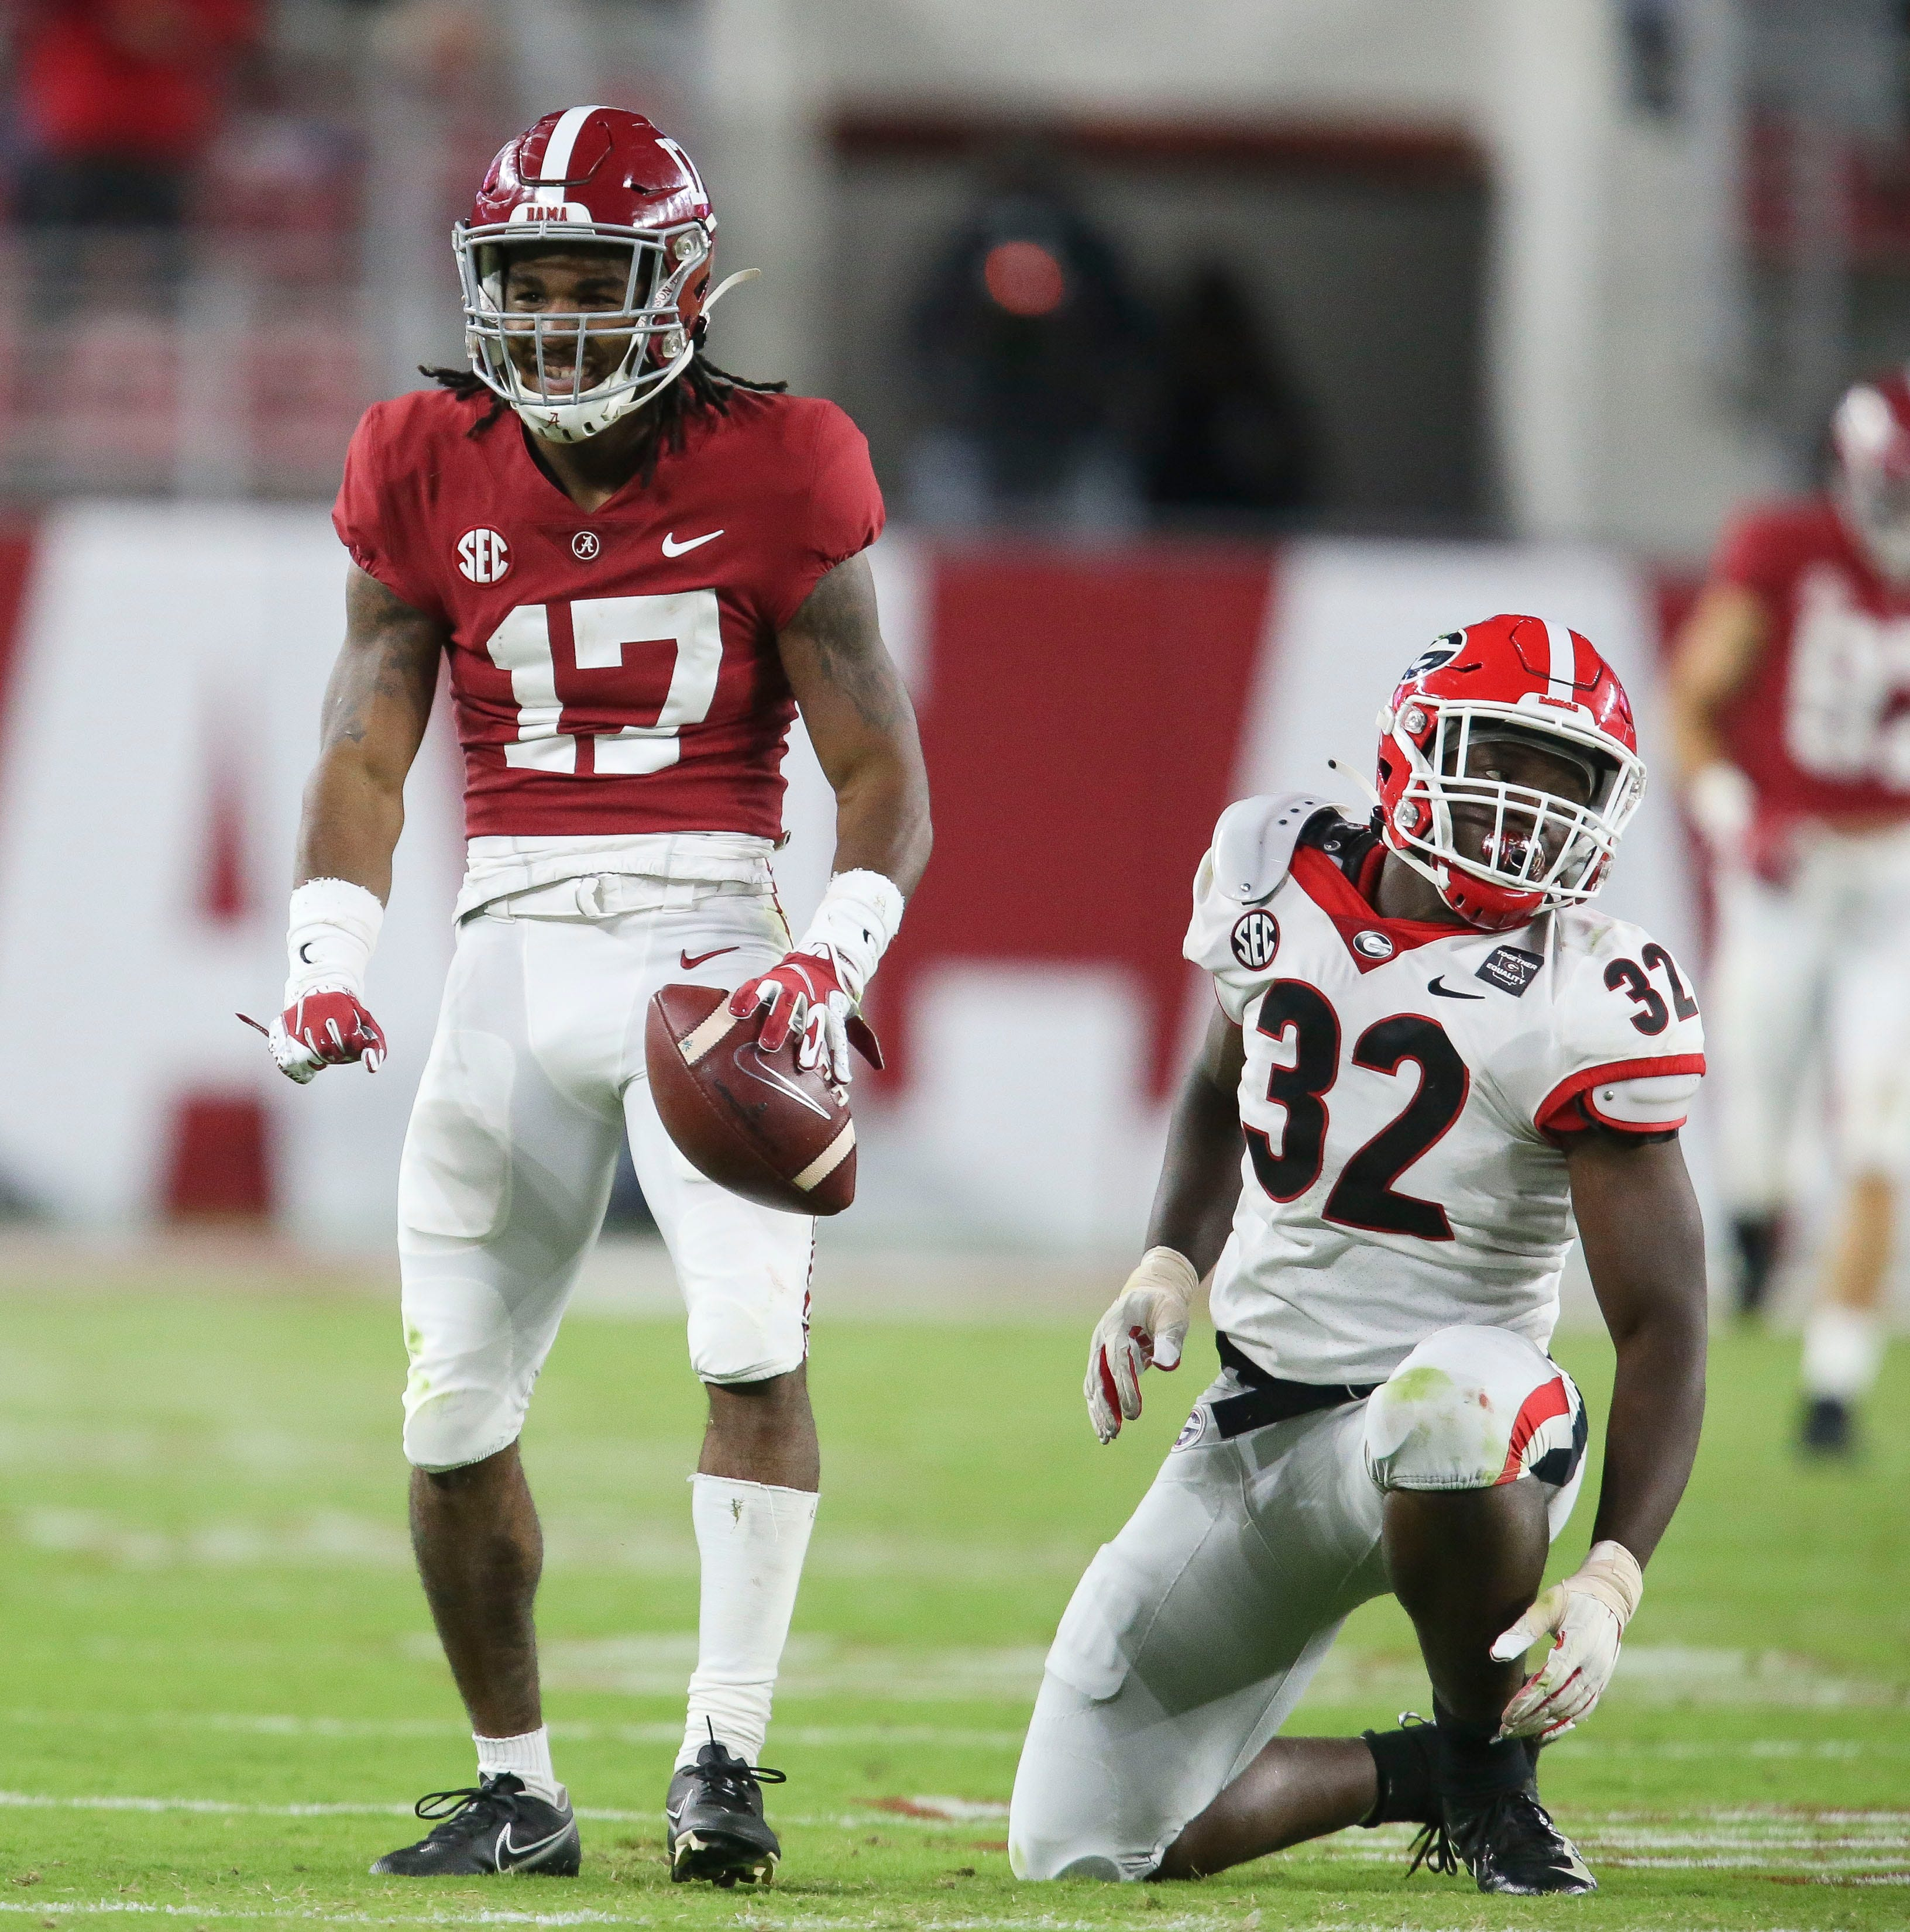 No. 2 Alabama overpowers No. 3 Georgia late, lays early claim to College Football Playoff slot